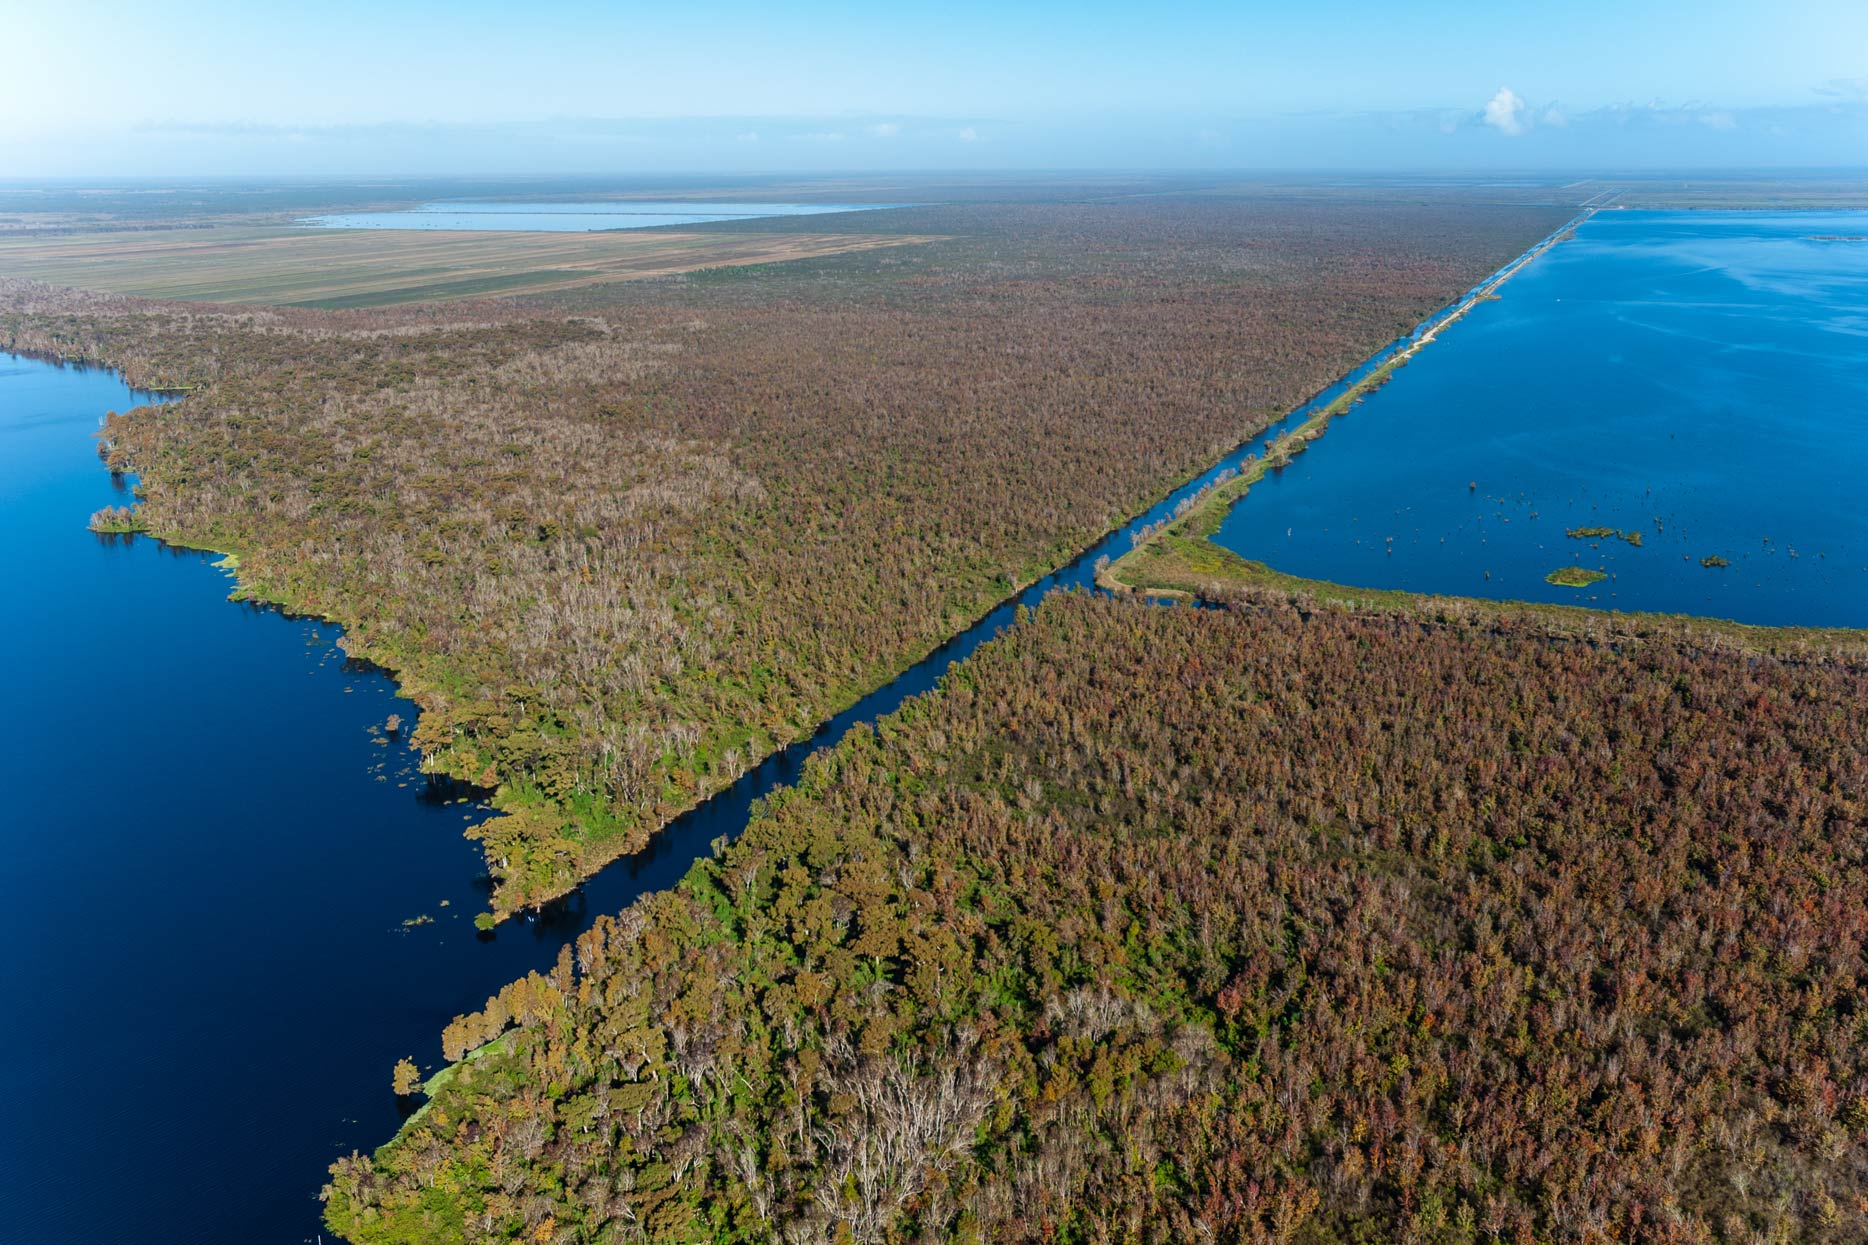 Aerial view of the Blue Cypress stick marsh